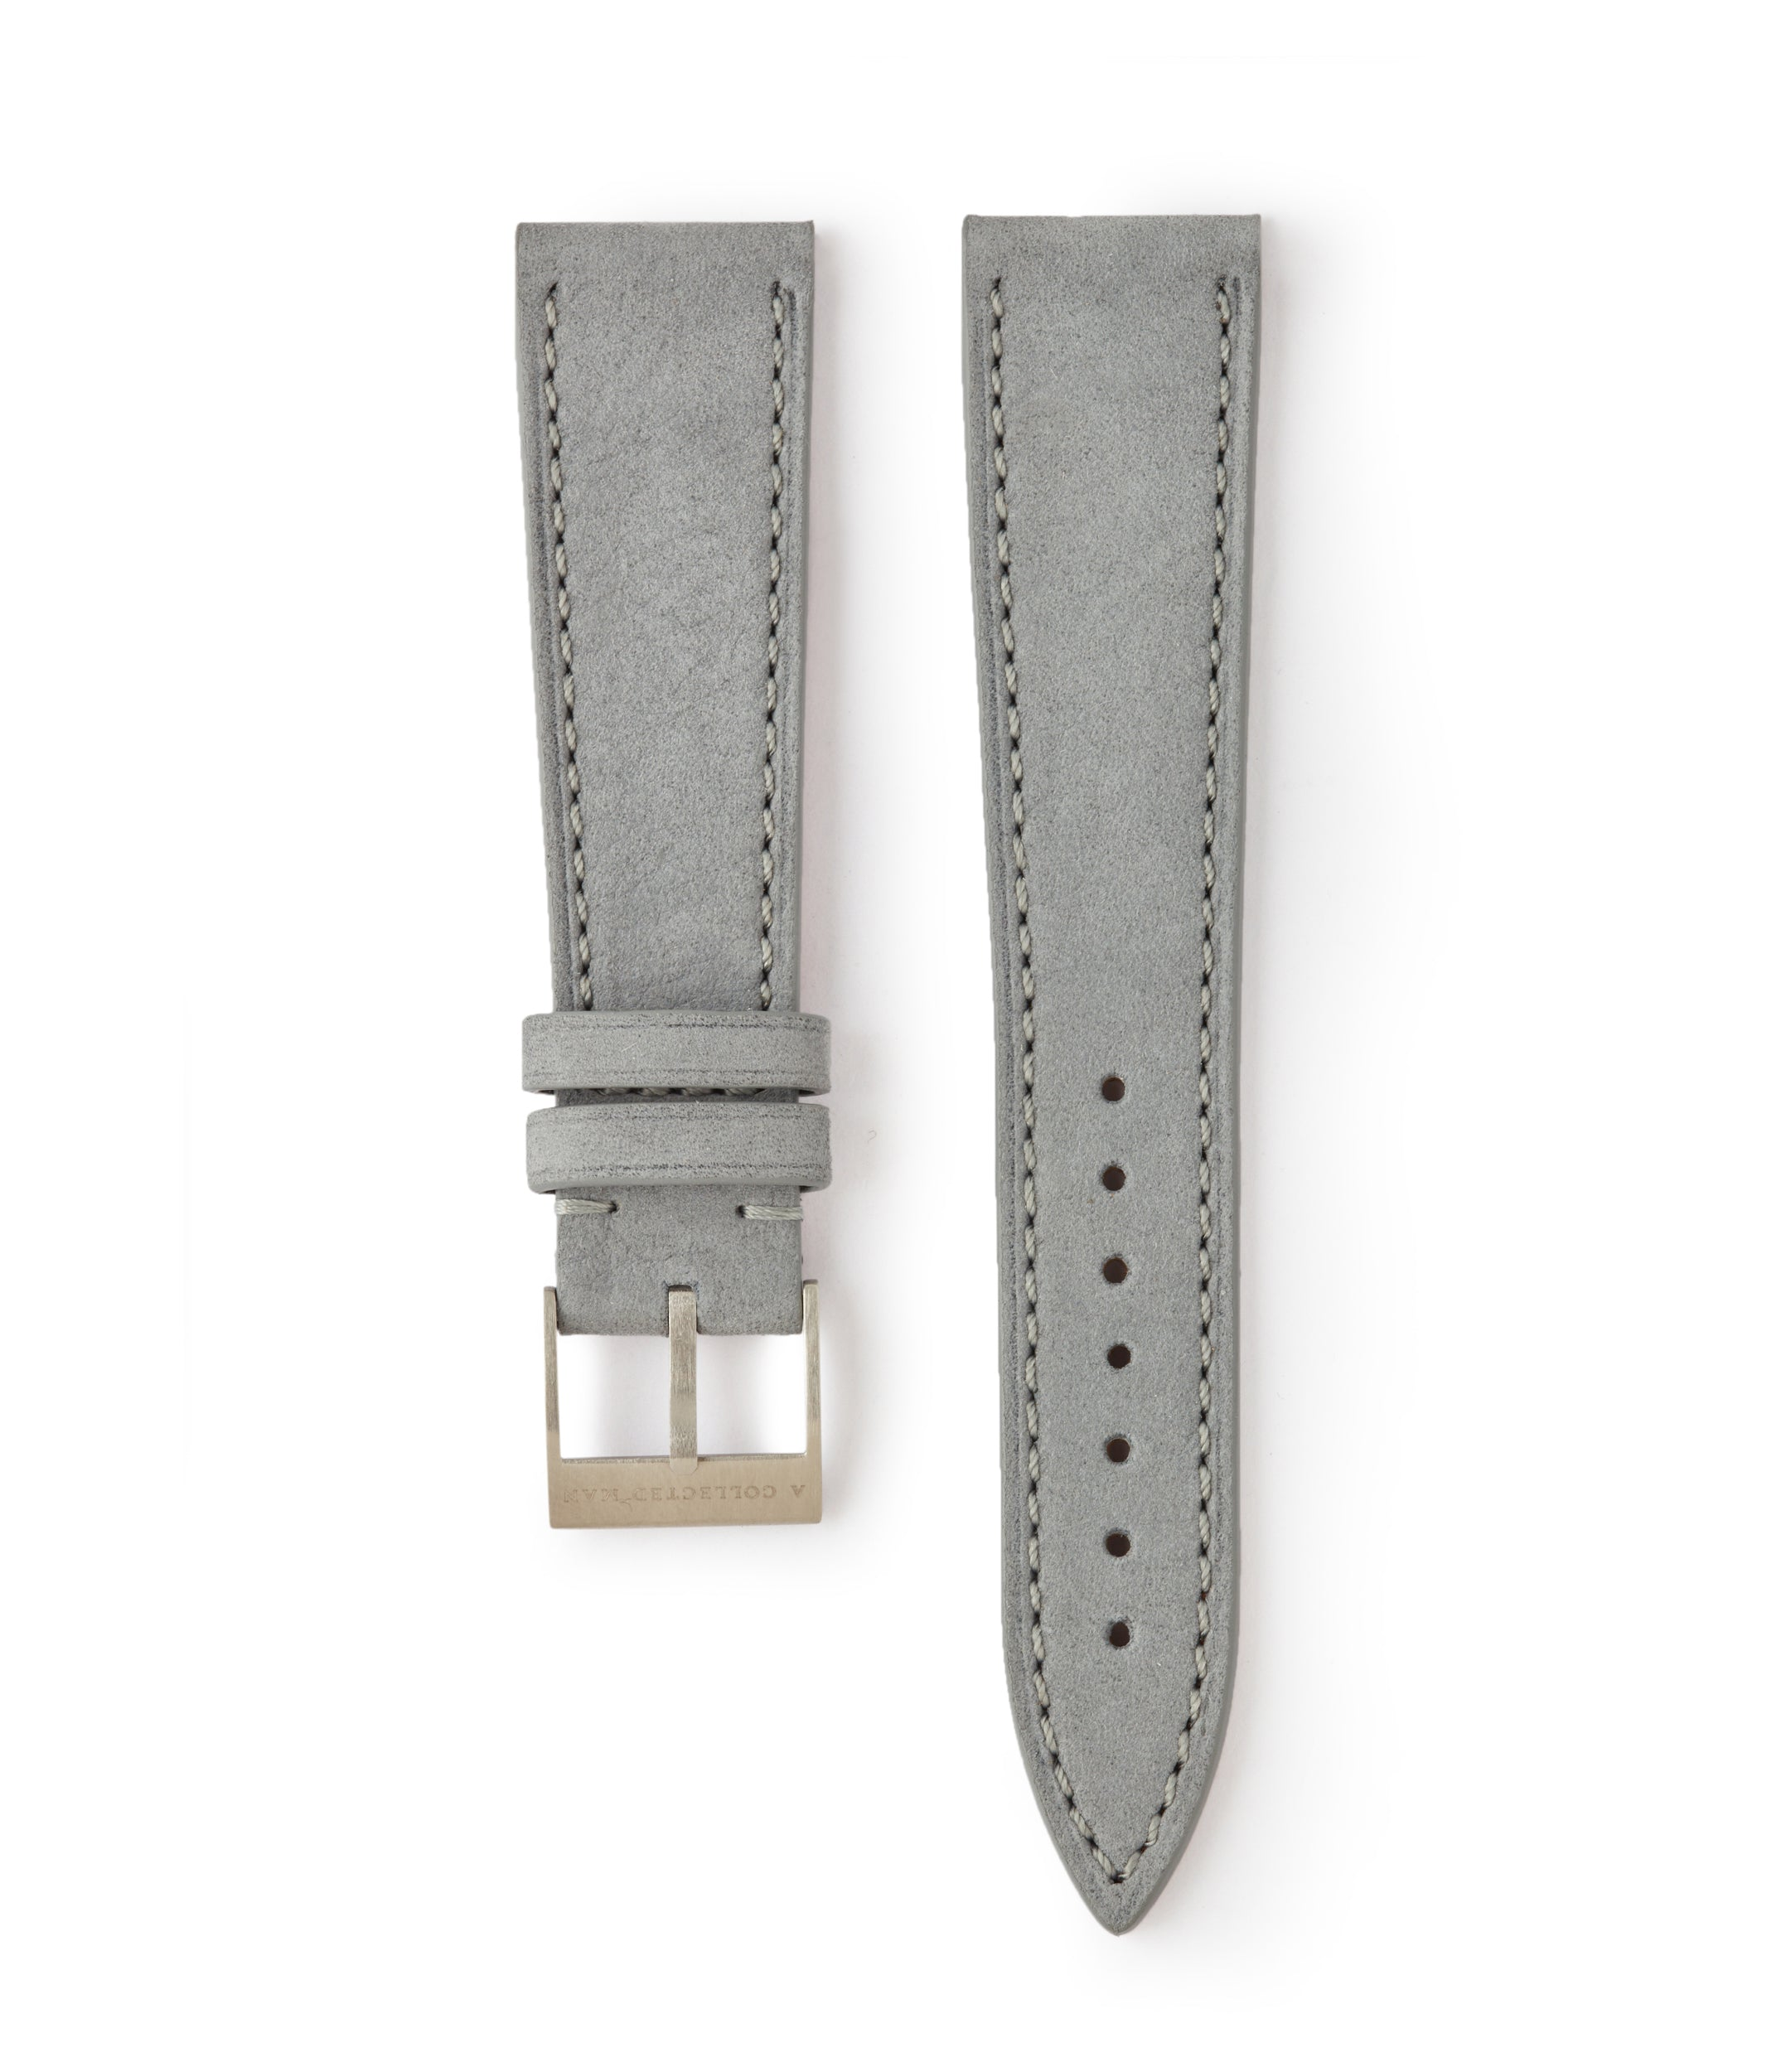 buy light pastel grey Tallinn luxury nubuck leather watch strap 18mm order online at A Collected Man London